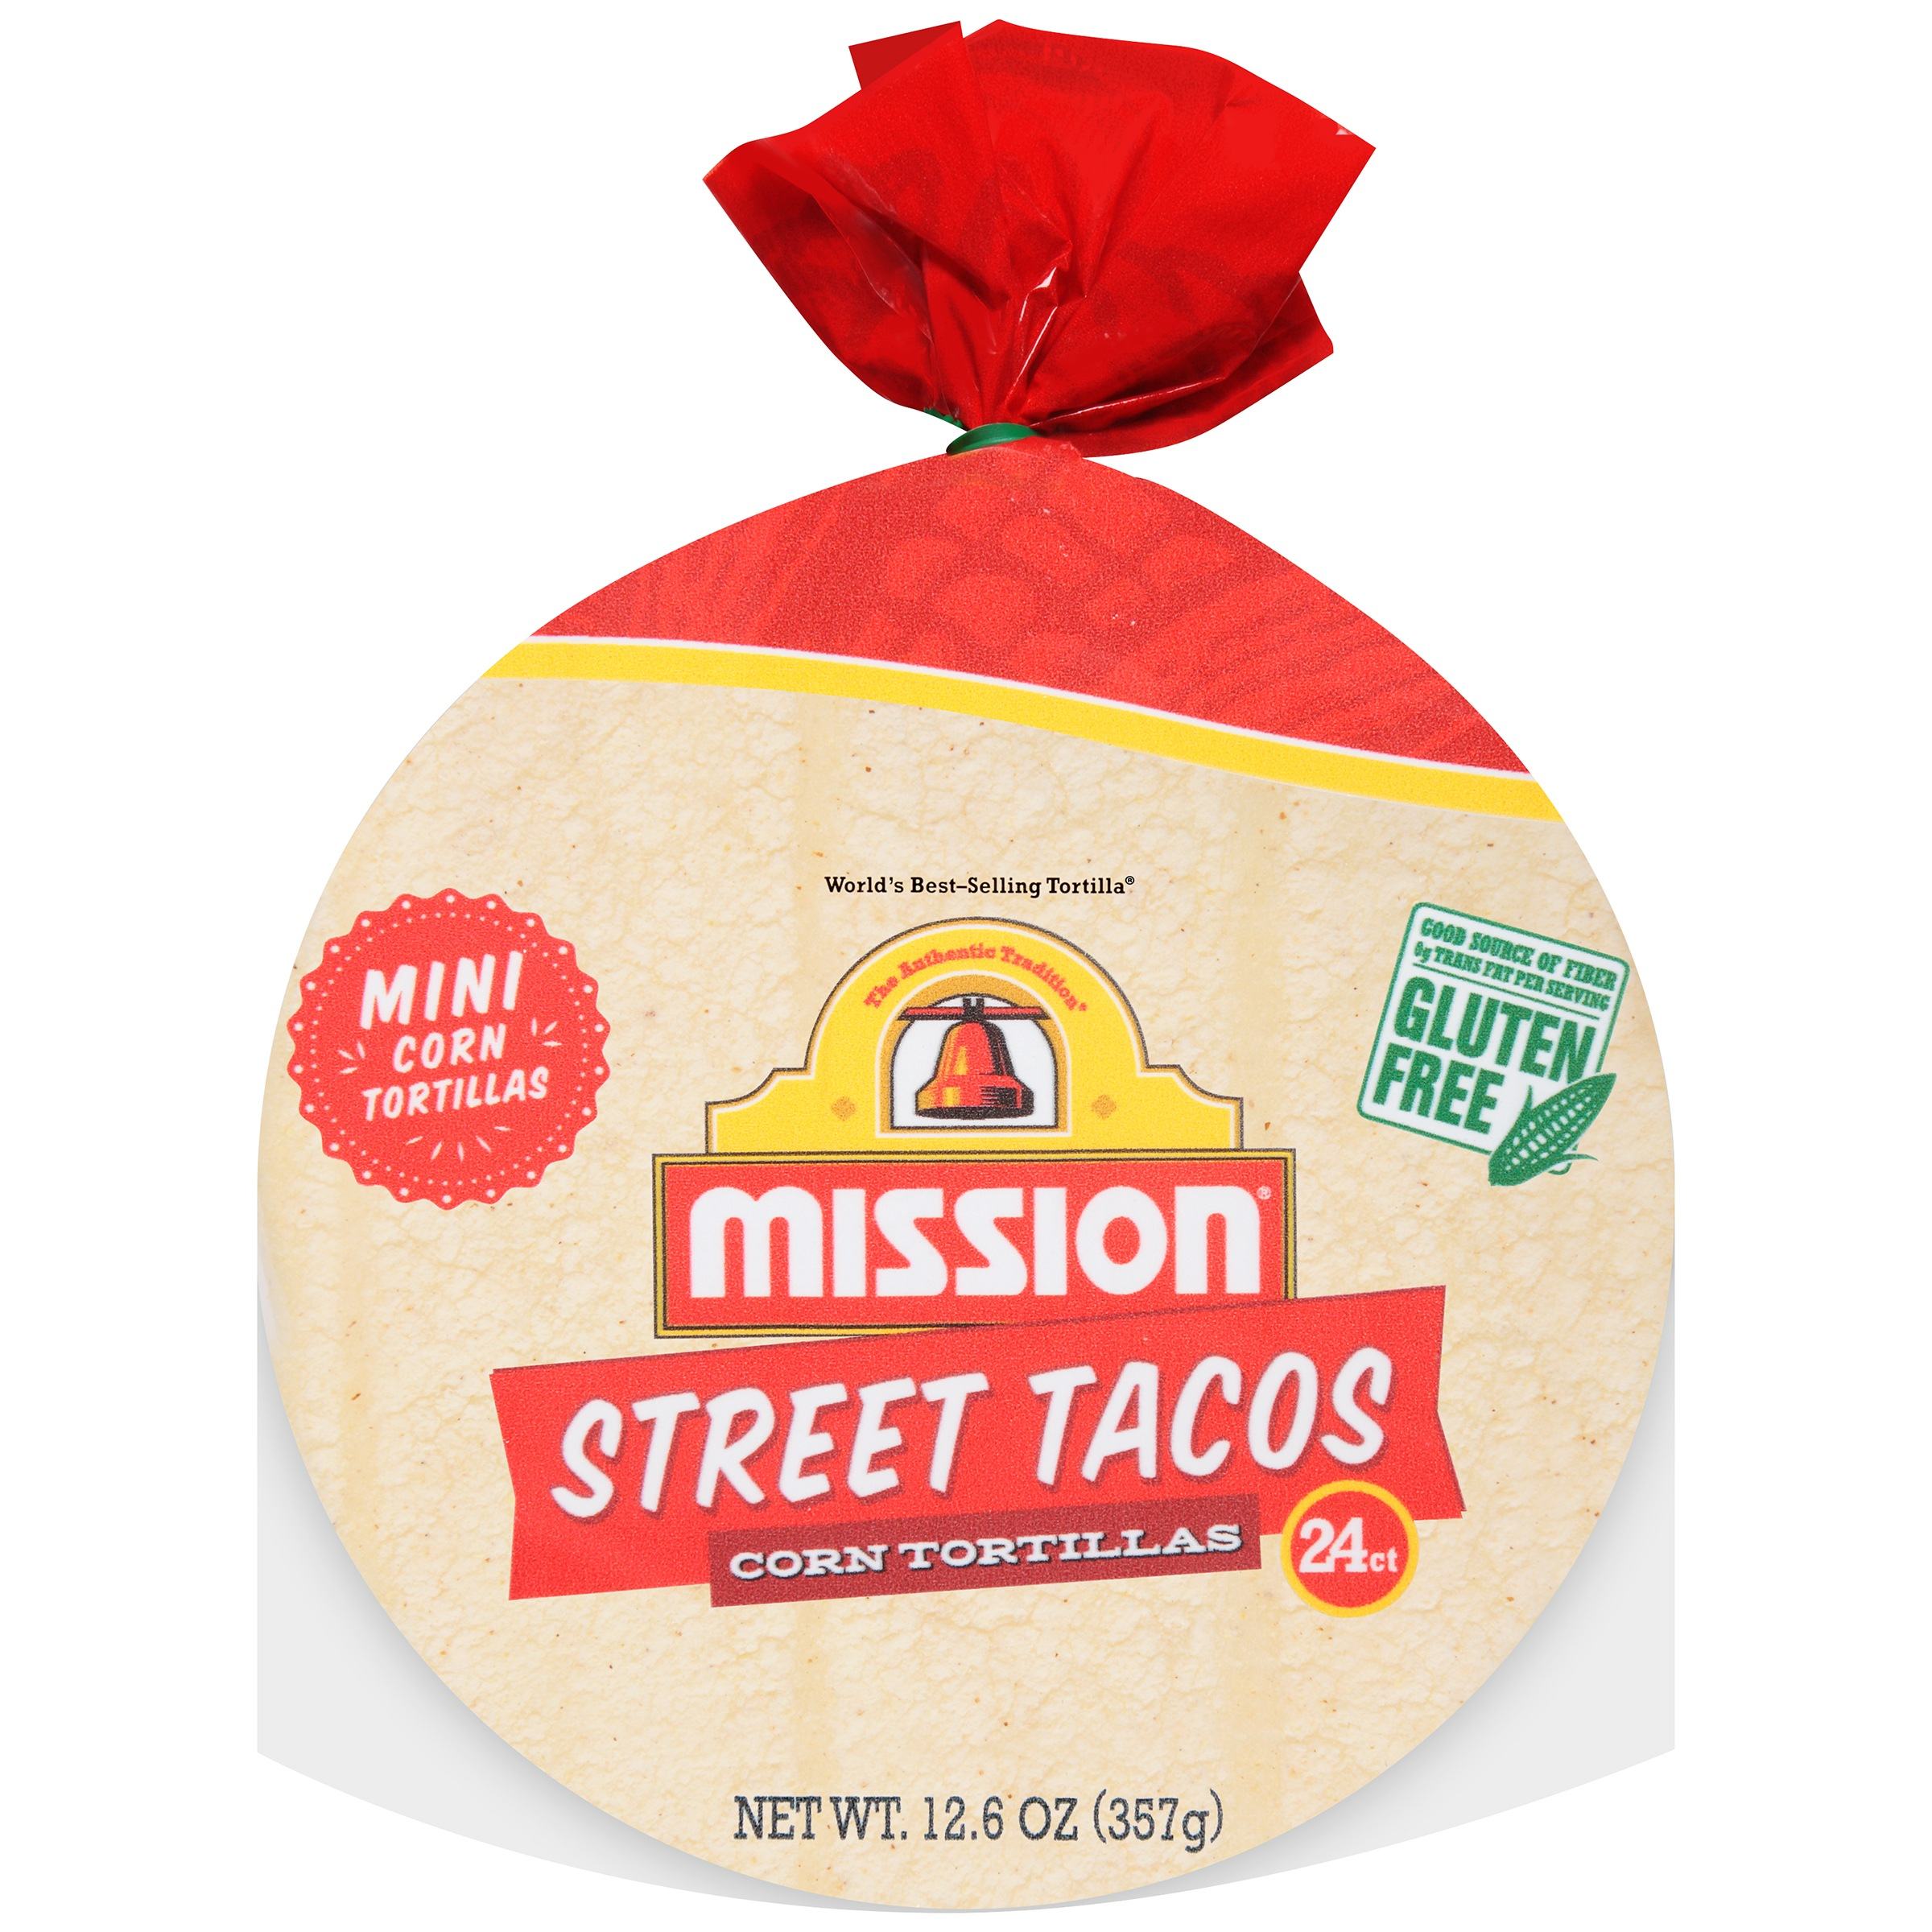 Mission® Street Tacos Corn Tortillas 24 ct Bag